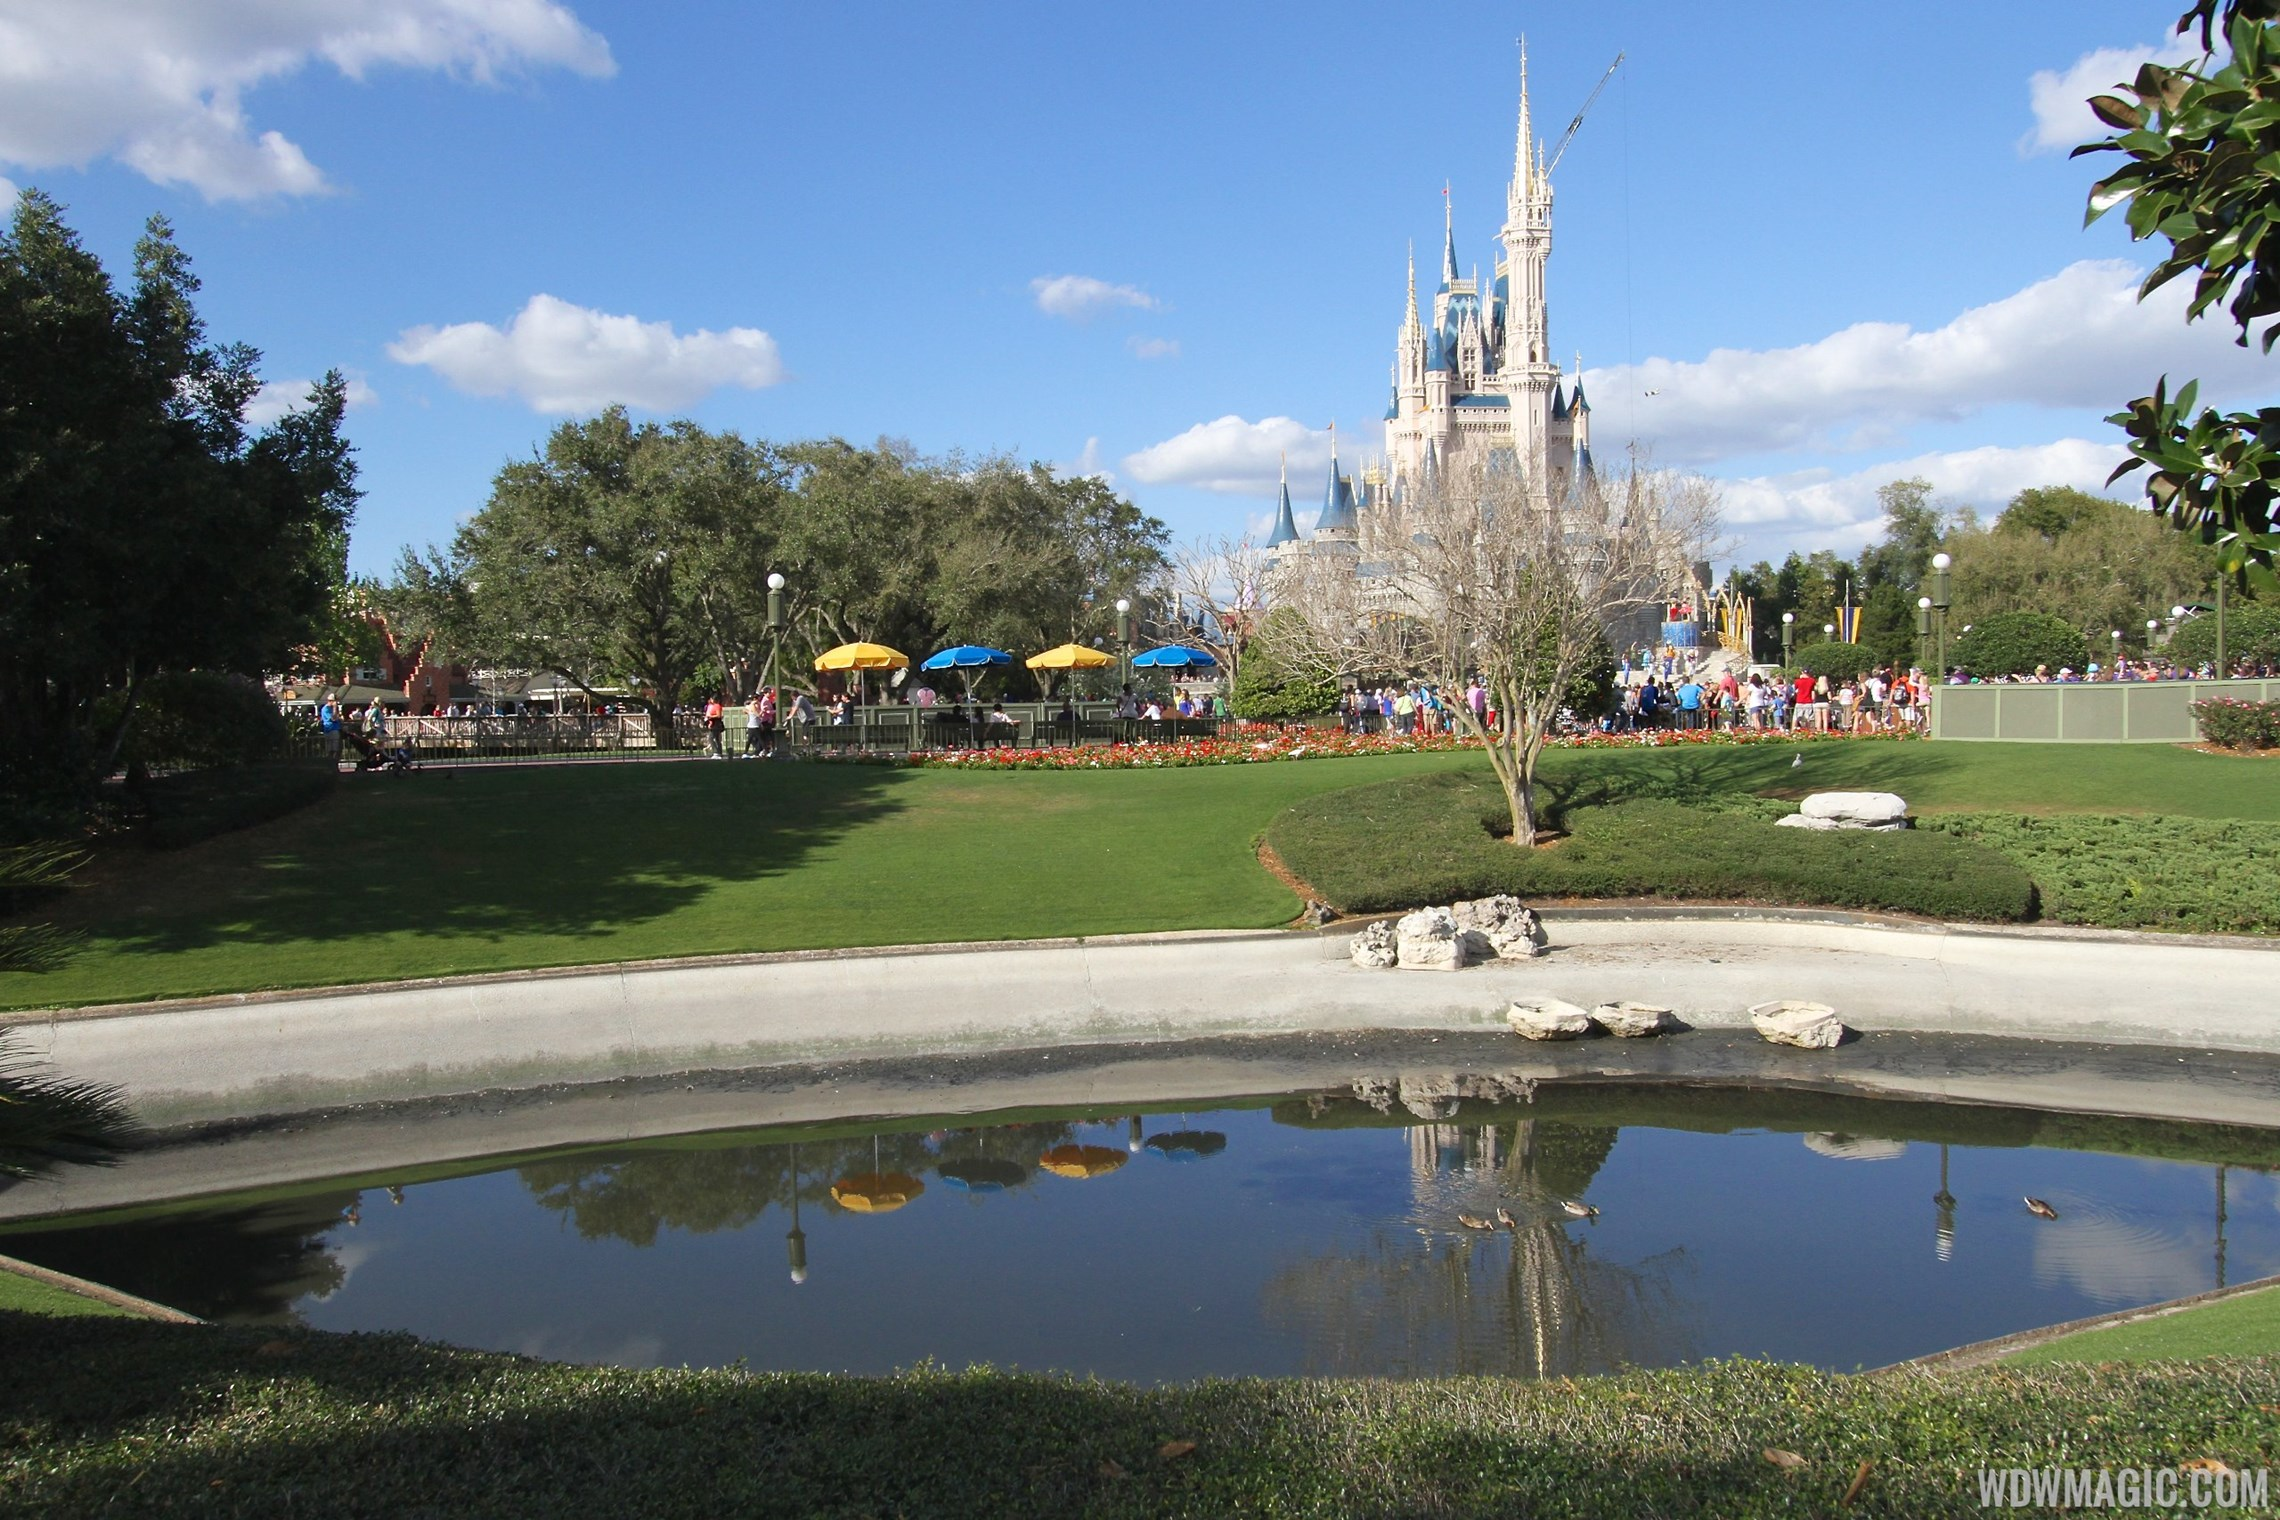 Magic Kingdom moats drained